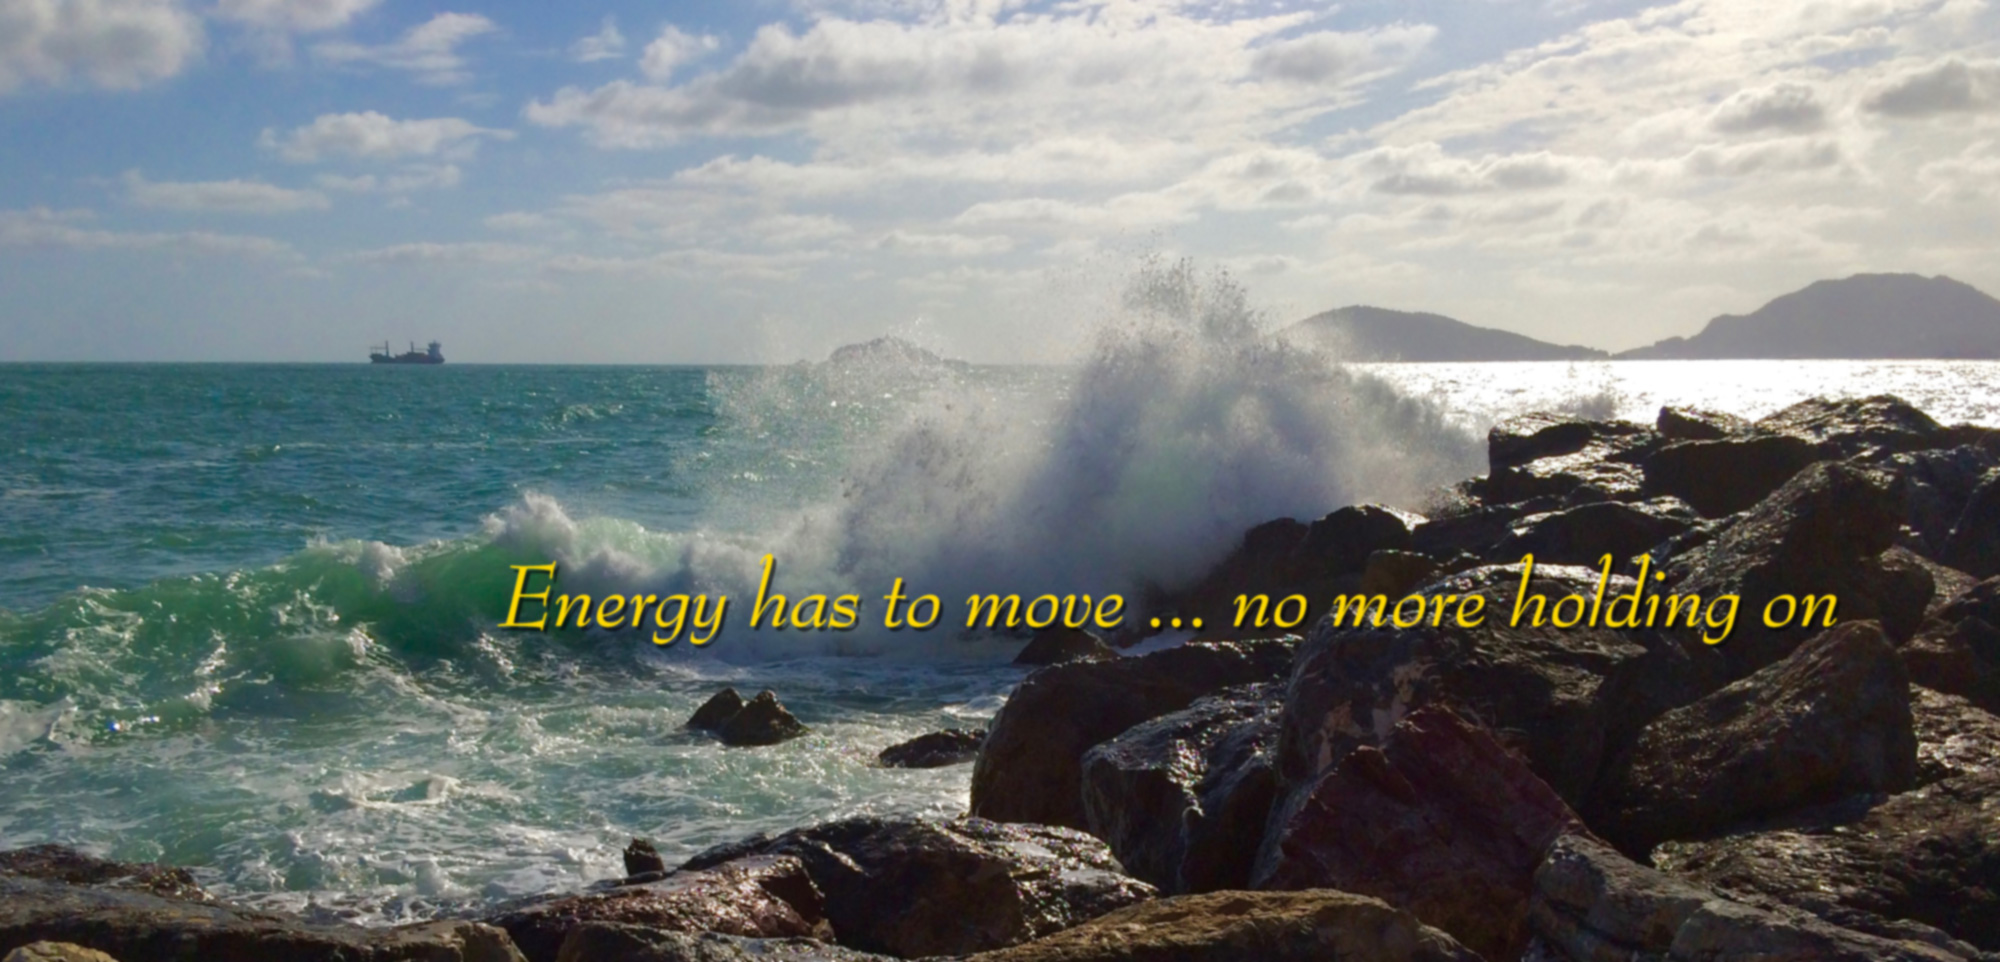 Energy has to move 2